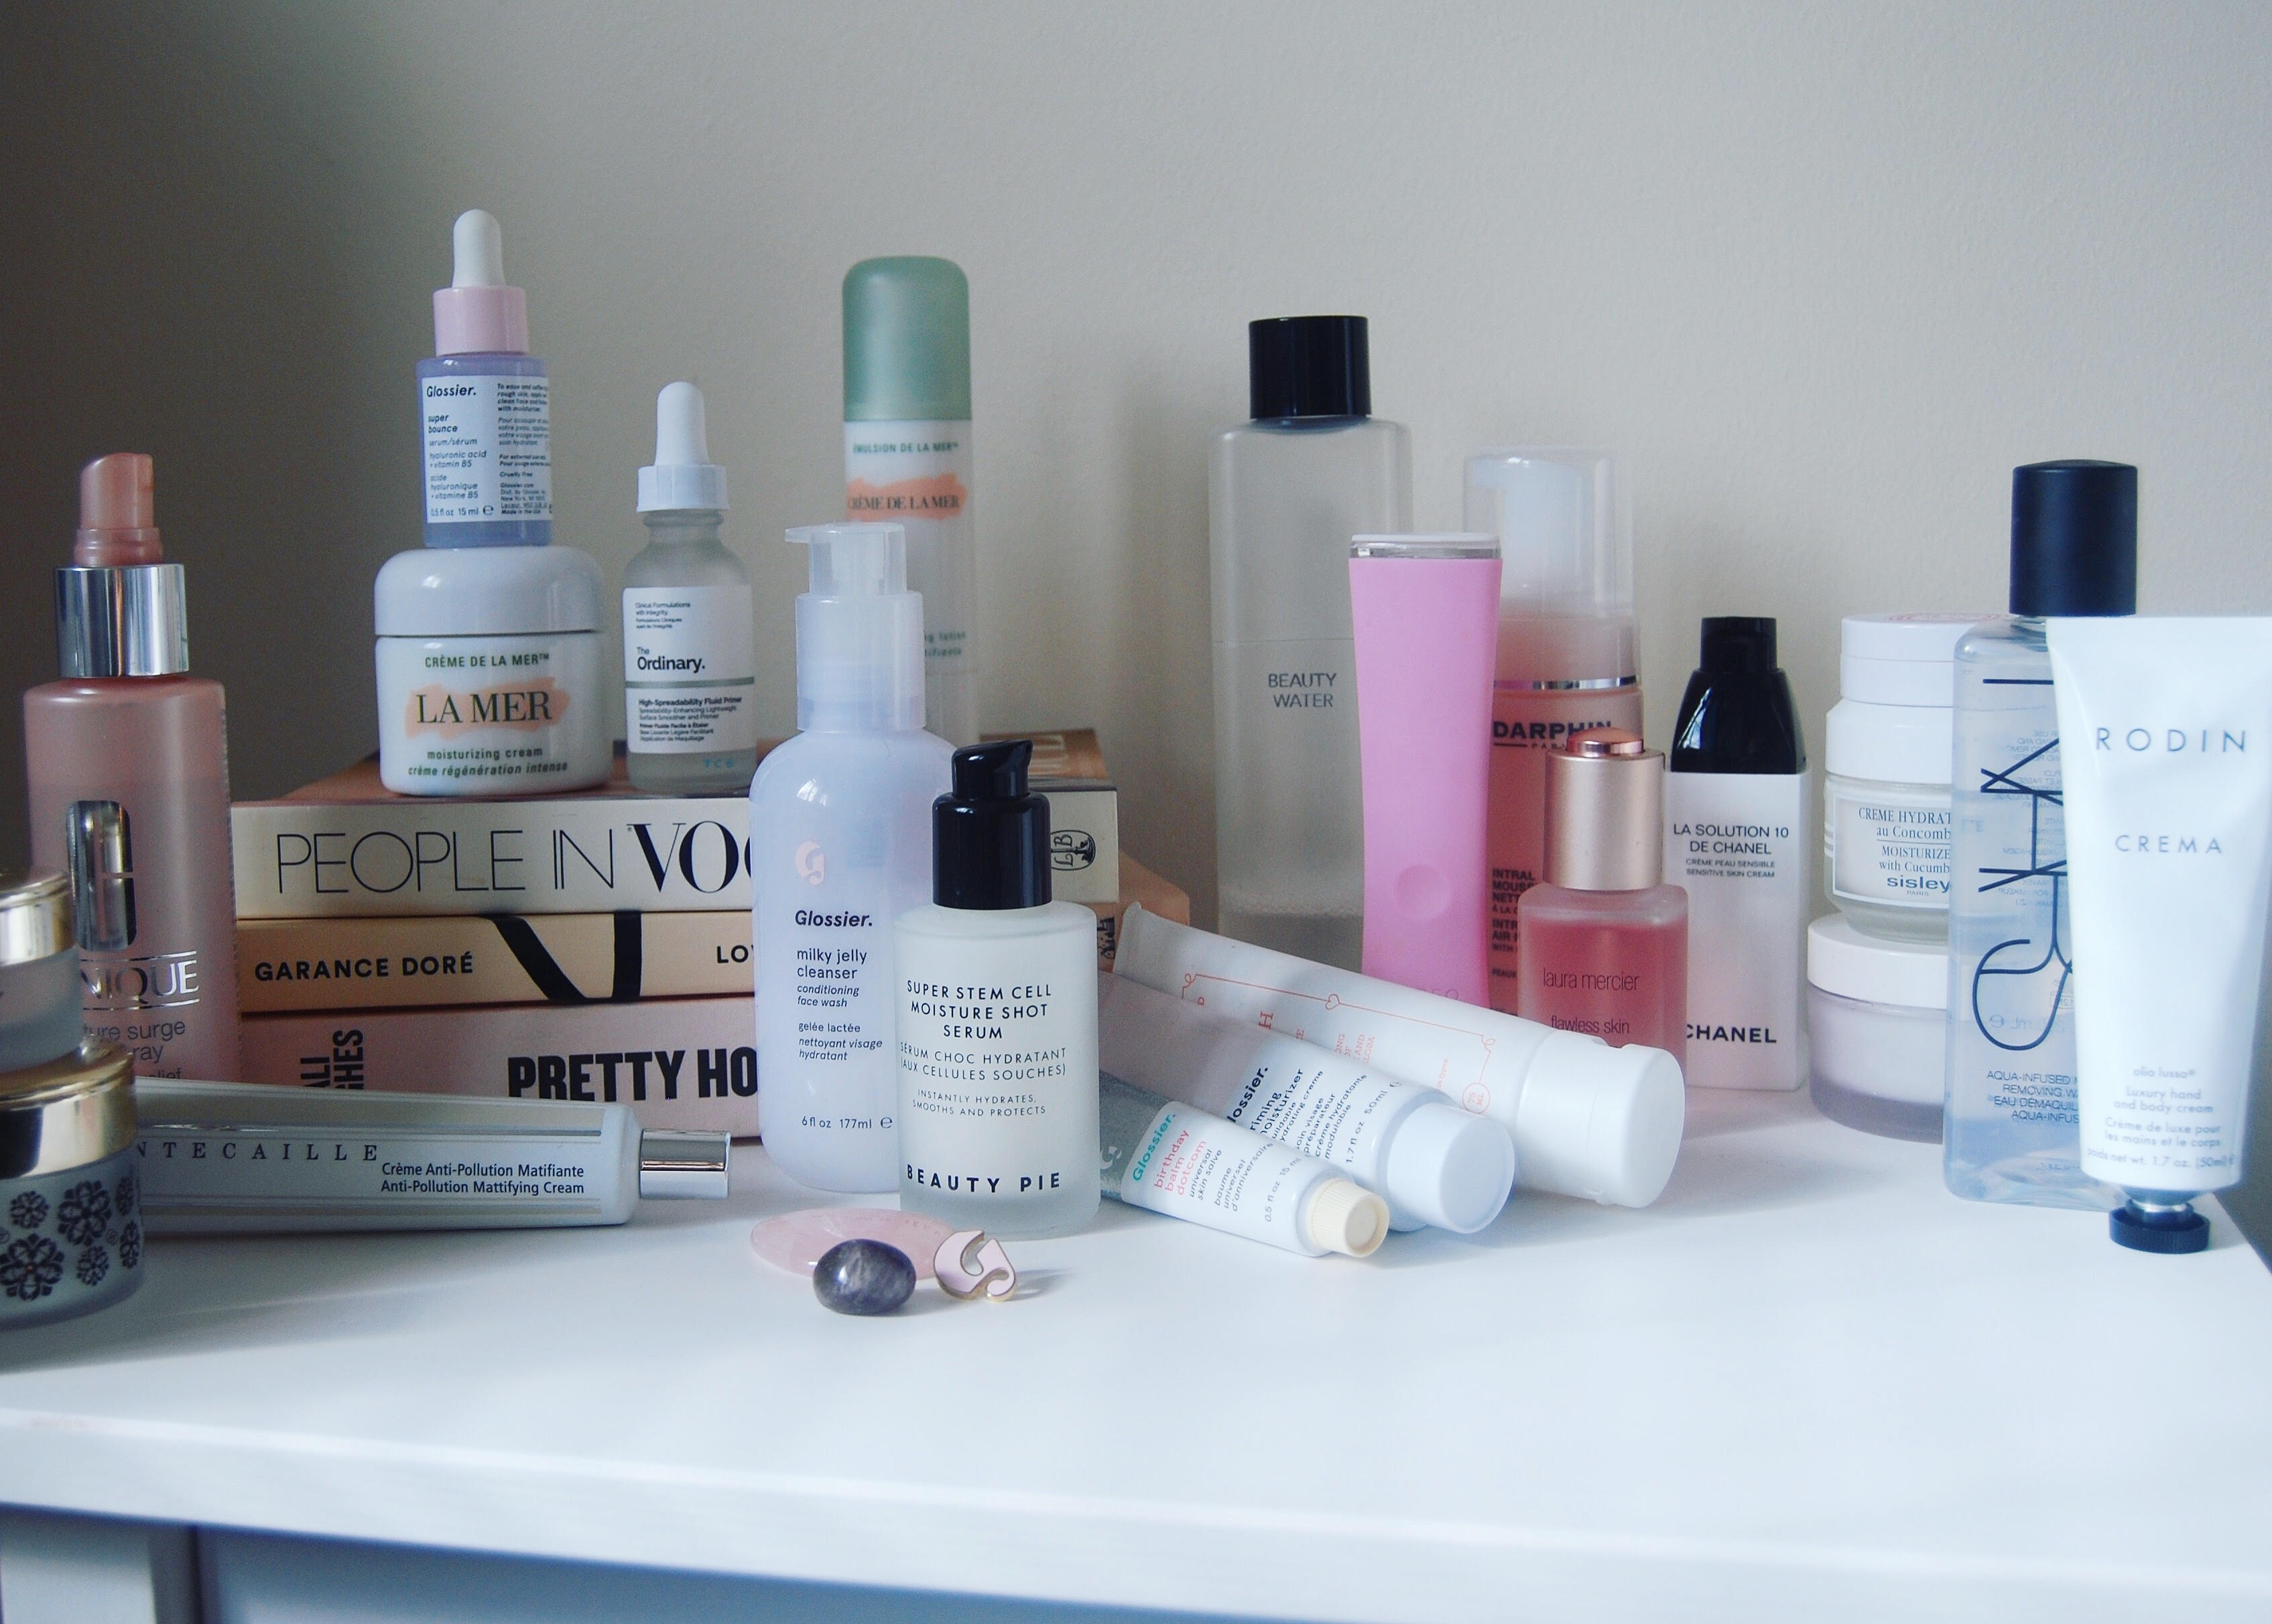 The big skincare overload